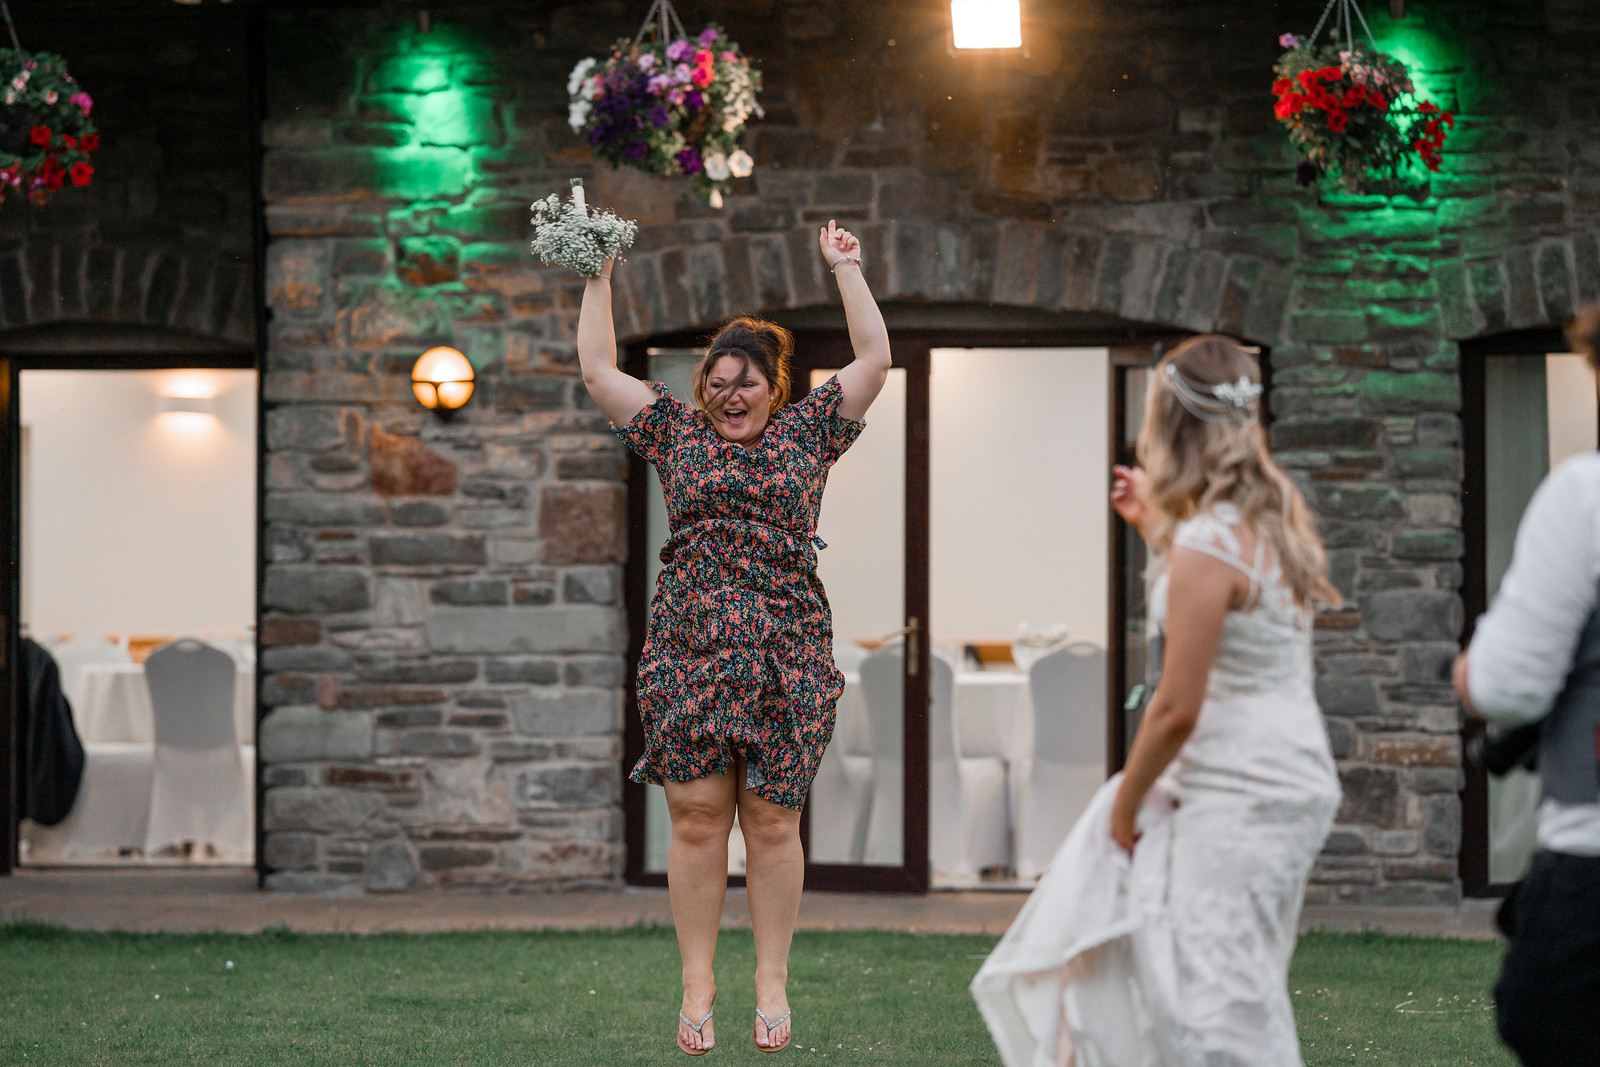 The guest jumps for joy as she caught the flowers of the bride